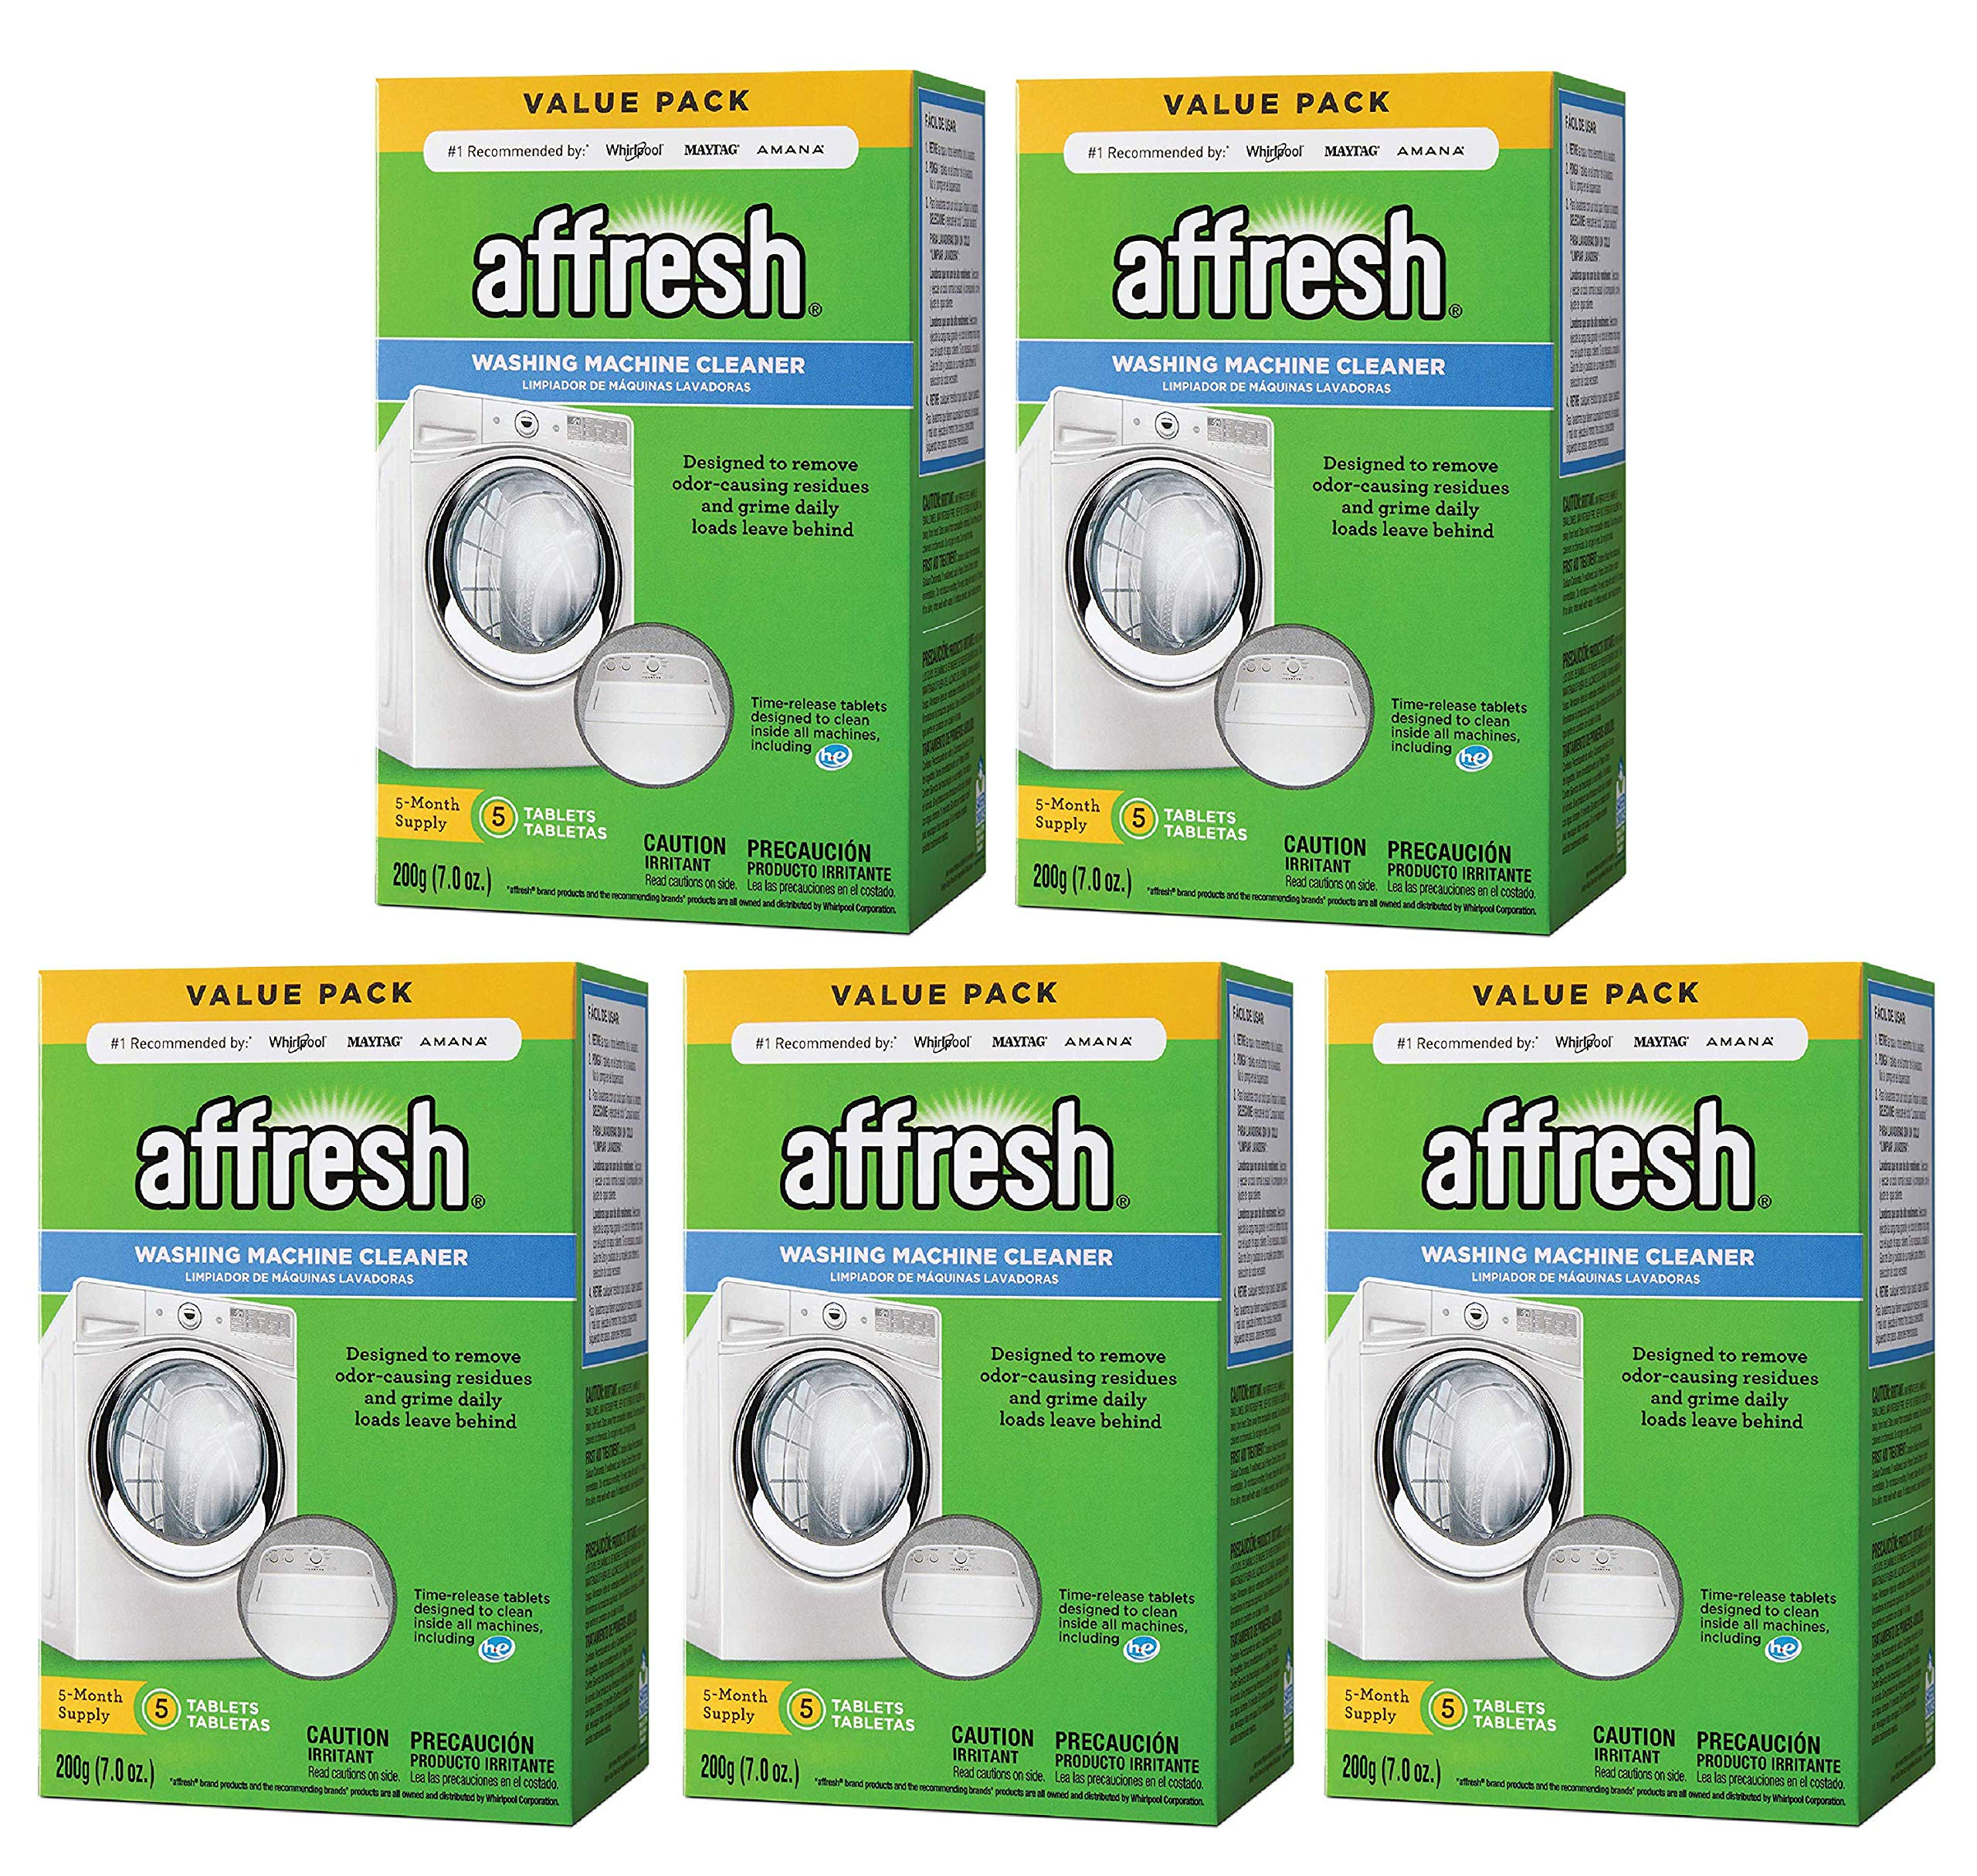 Affresh W10549846 Washing Machine Cleaner 5 Tablets White 5 Count 5 Pack Buy Online In Colombia Affresh Products In Colombia See Prices Reviews And Free Delivery Over Col 200 000 Desertcart